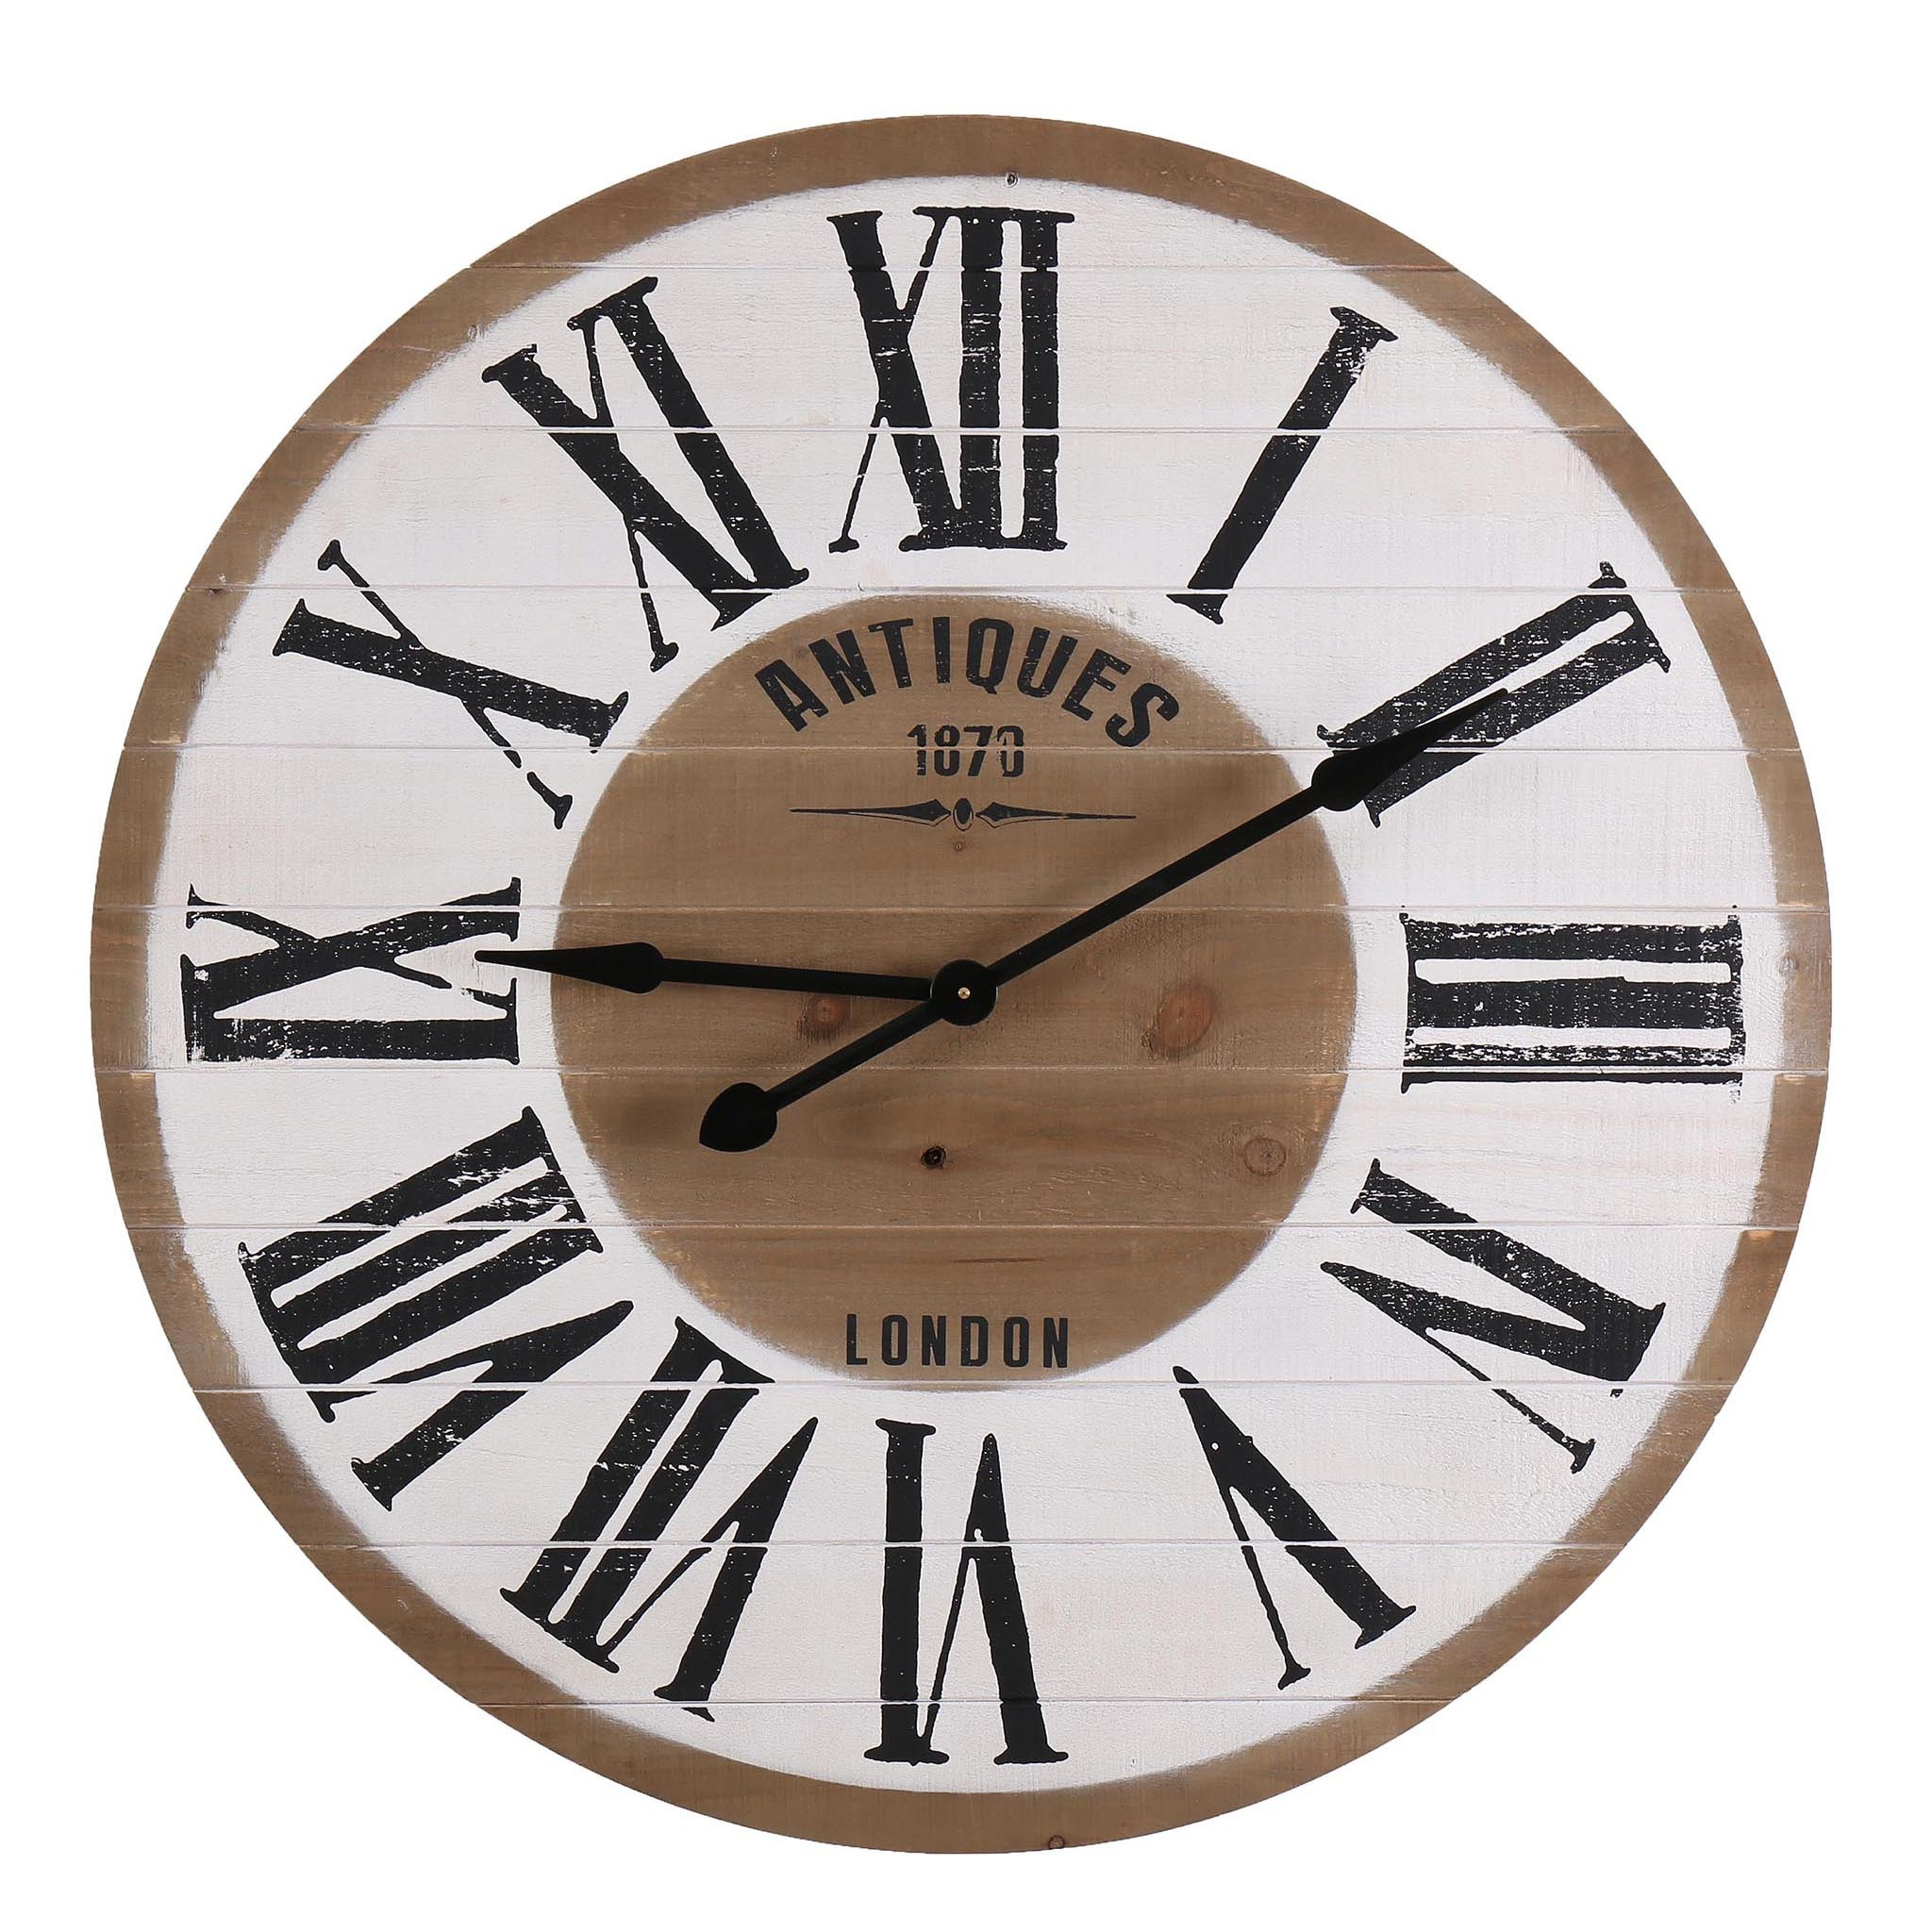 Besp-Oak Round Wooden Clock Antiques 1870 London